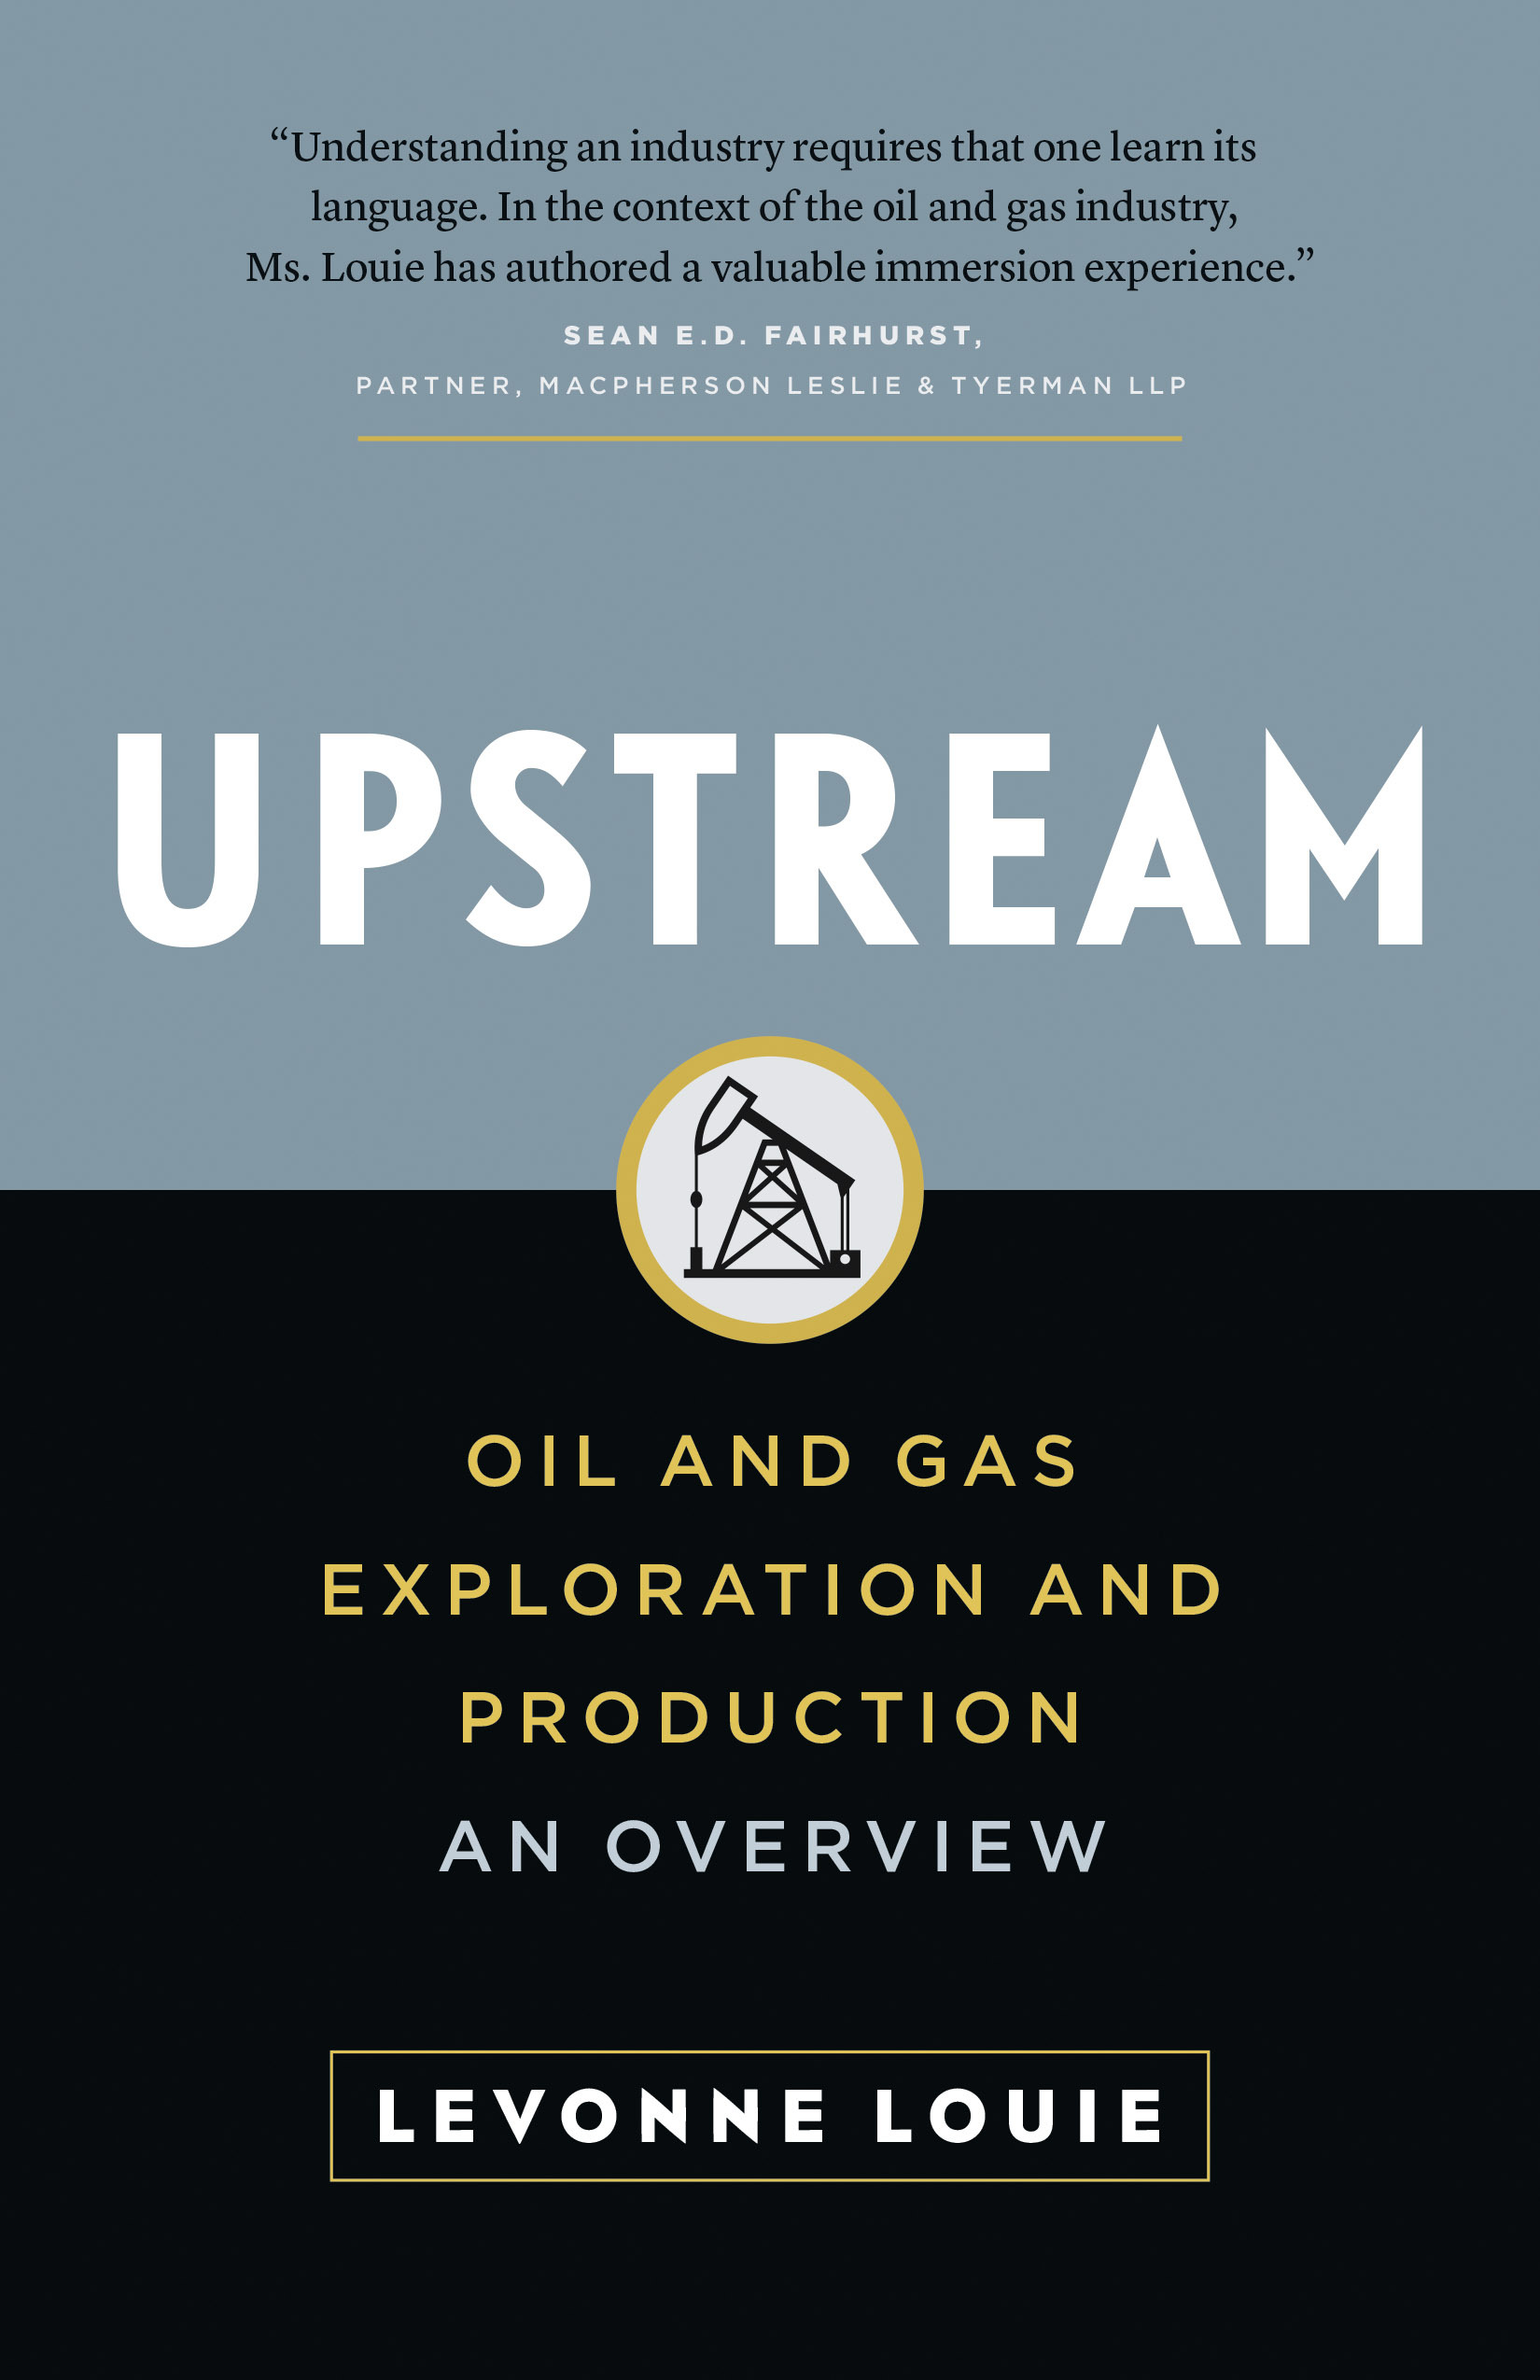 Upstream: Oil and Gas Exploration and Production - An Overview Levonne Louie